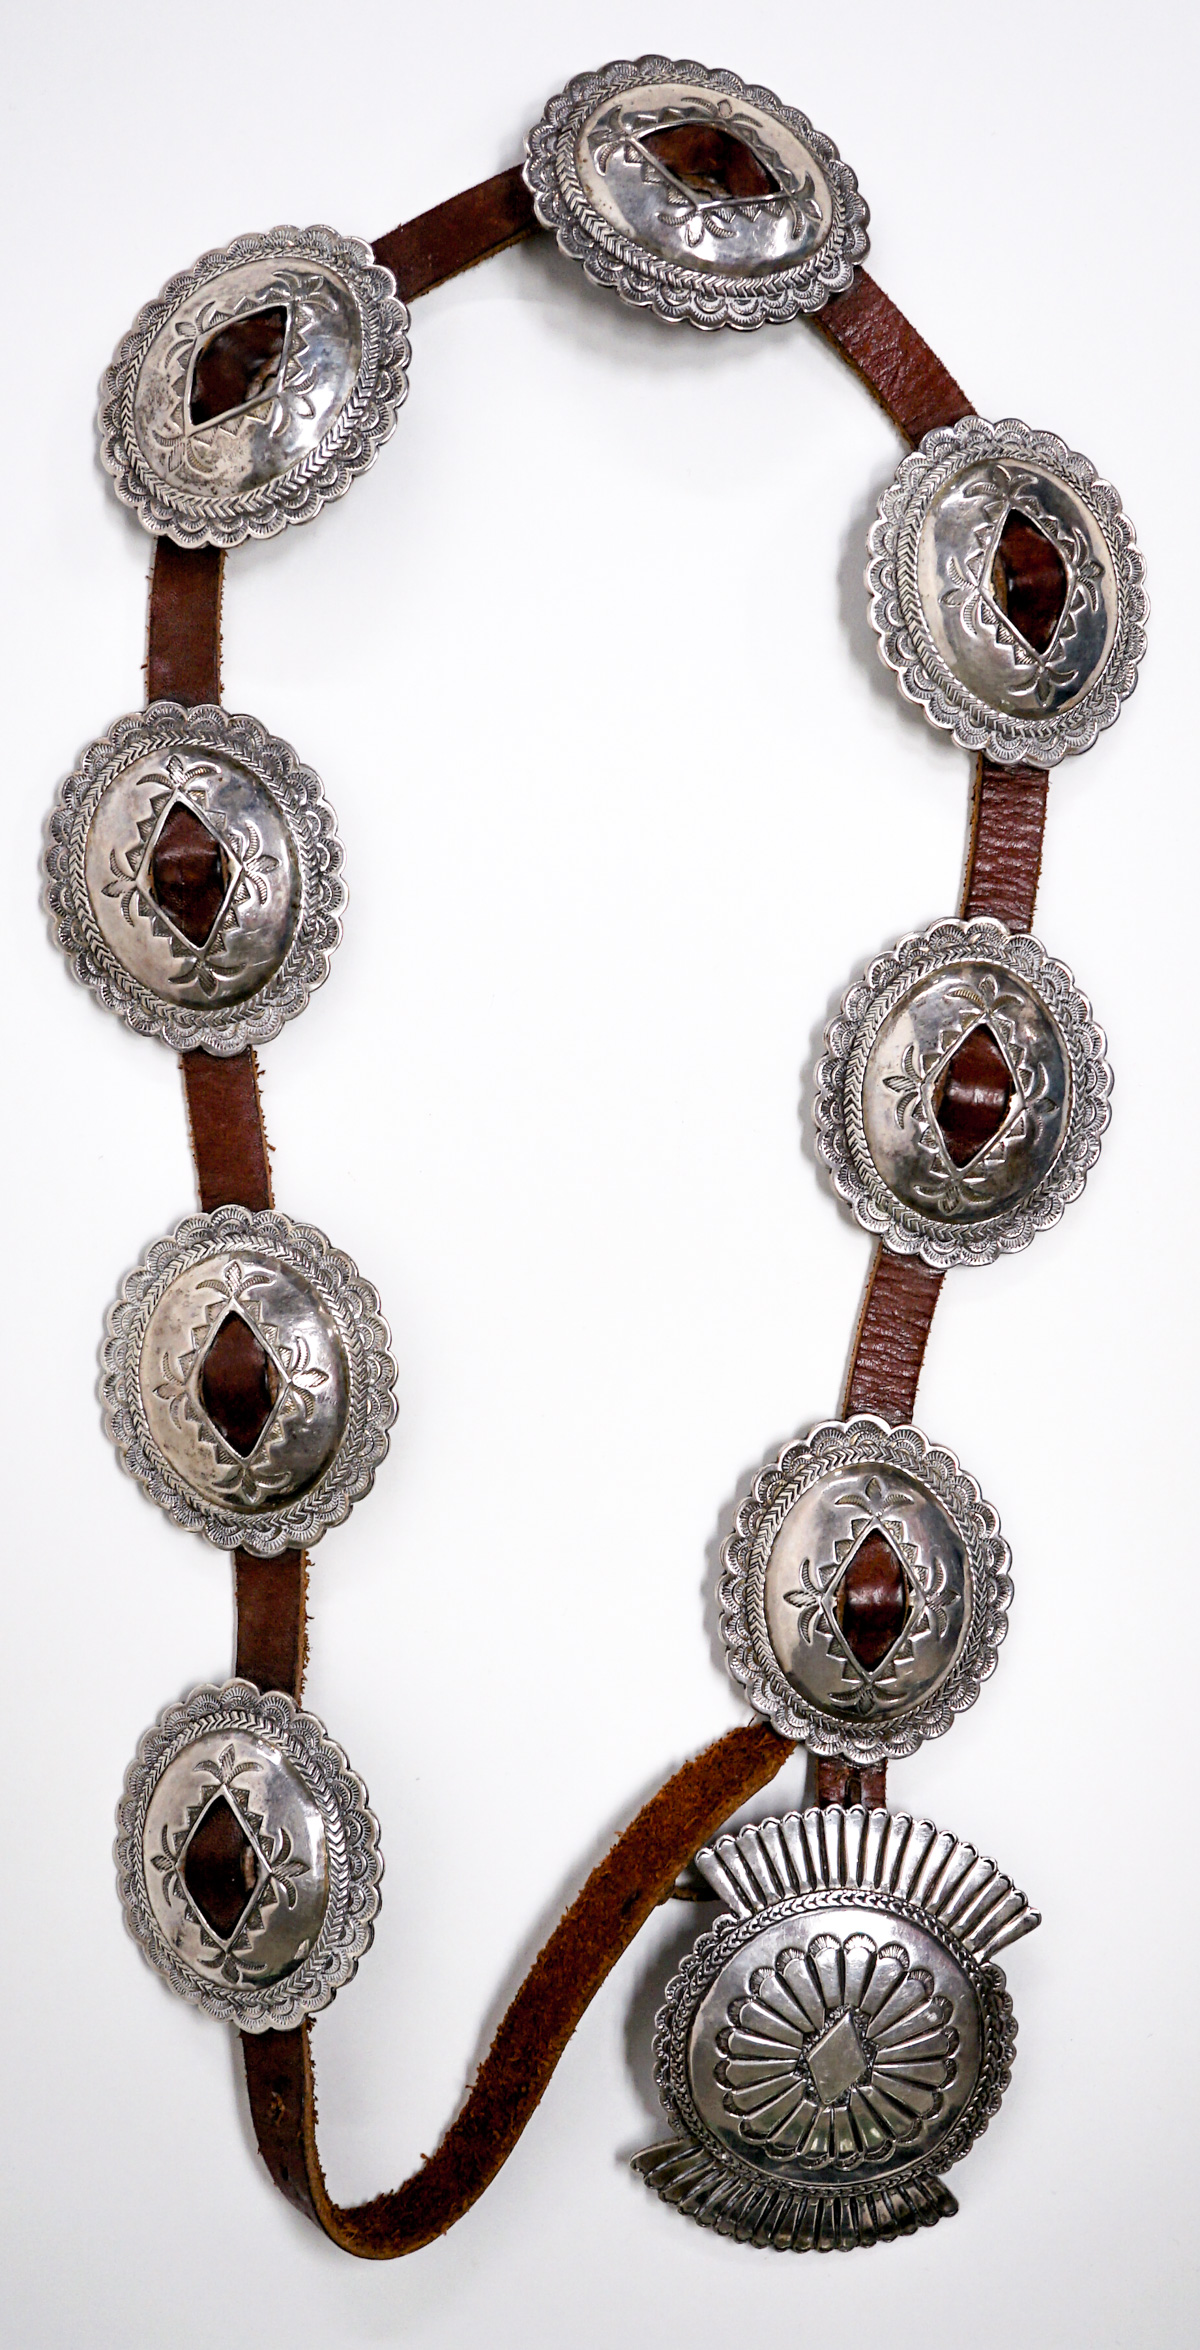 An Outstanding Vintage Large Concho Belt